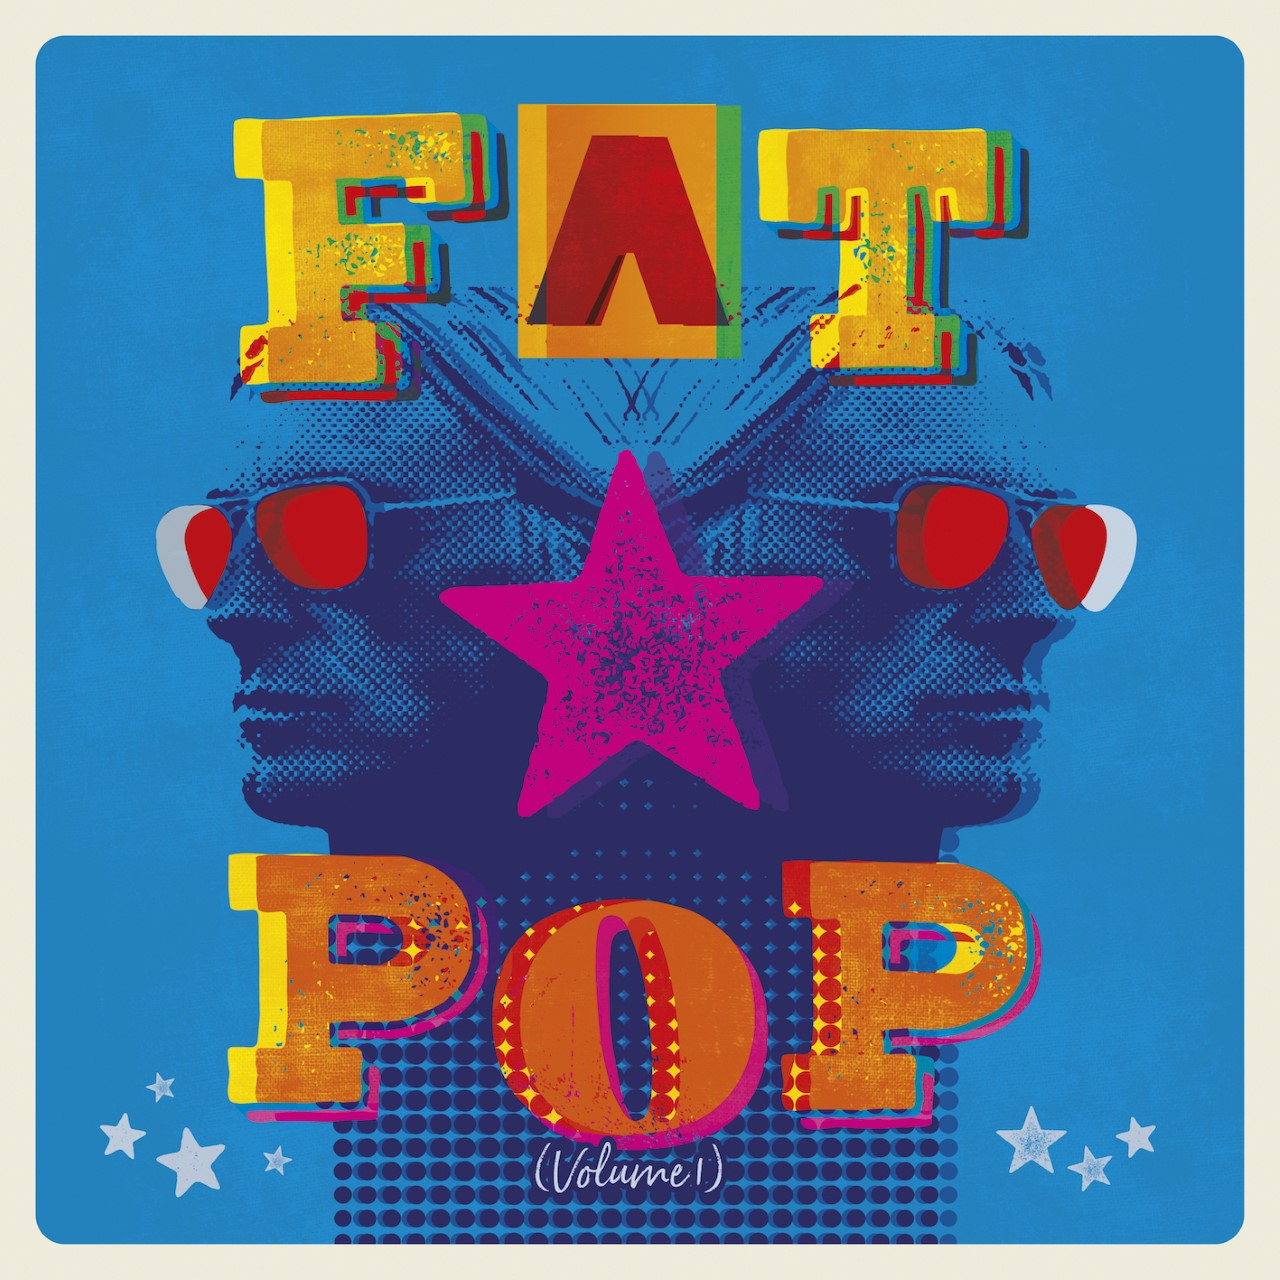 Paul Weller announces new album 'Fat Pop (Volume 1)'